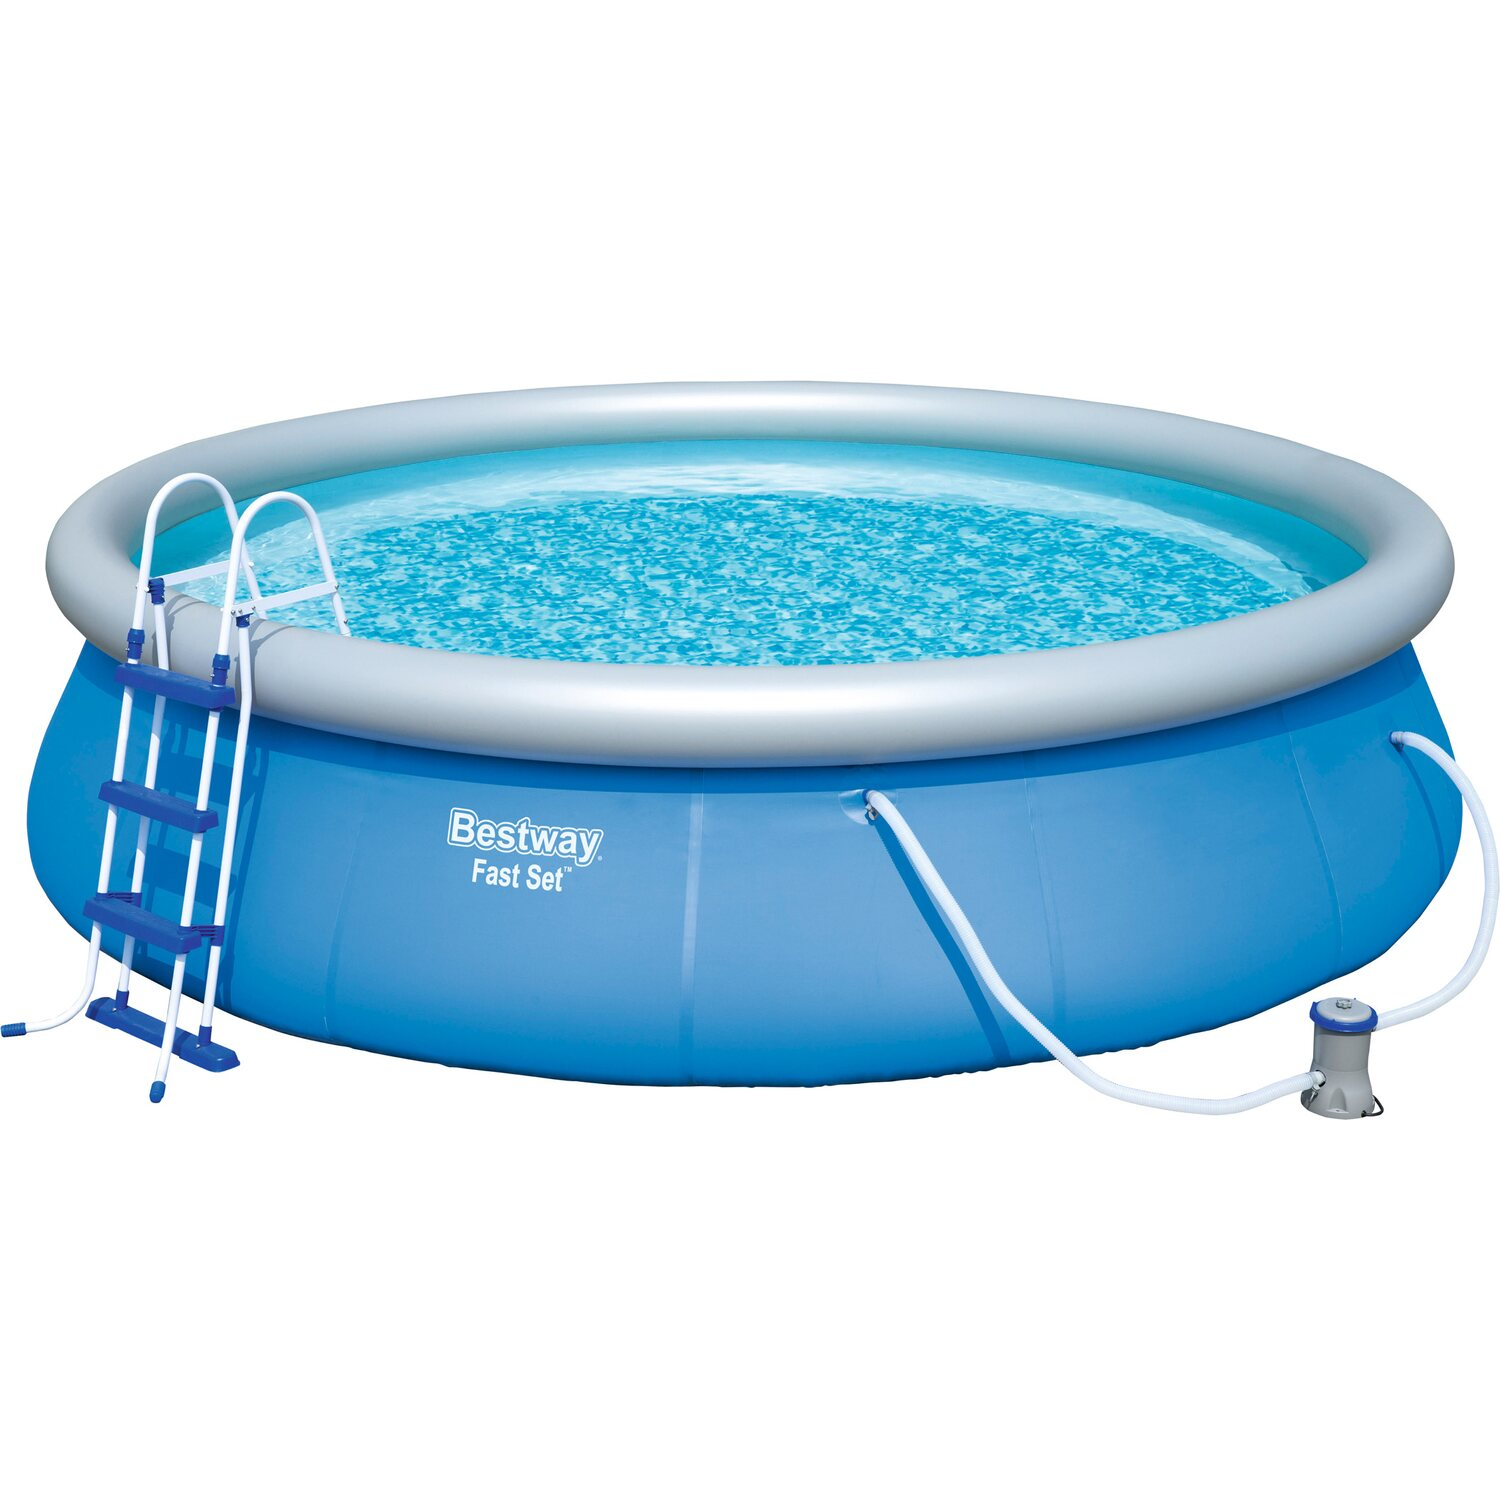 Bestway fast set pool kaufen bei obi for Bestway pool bei obi